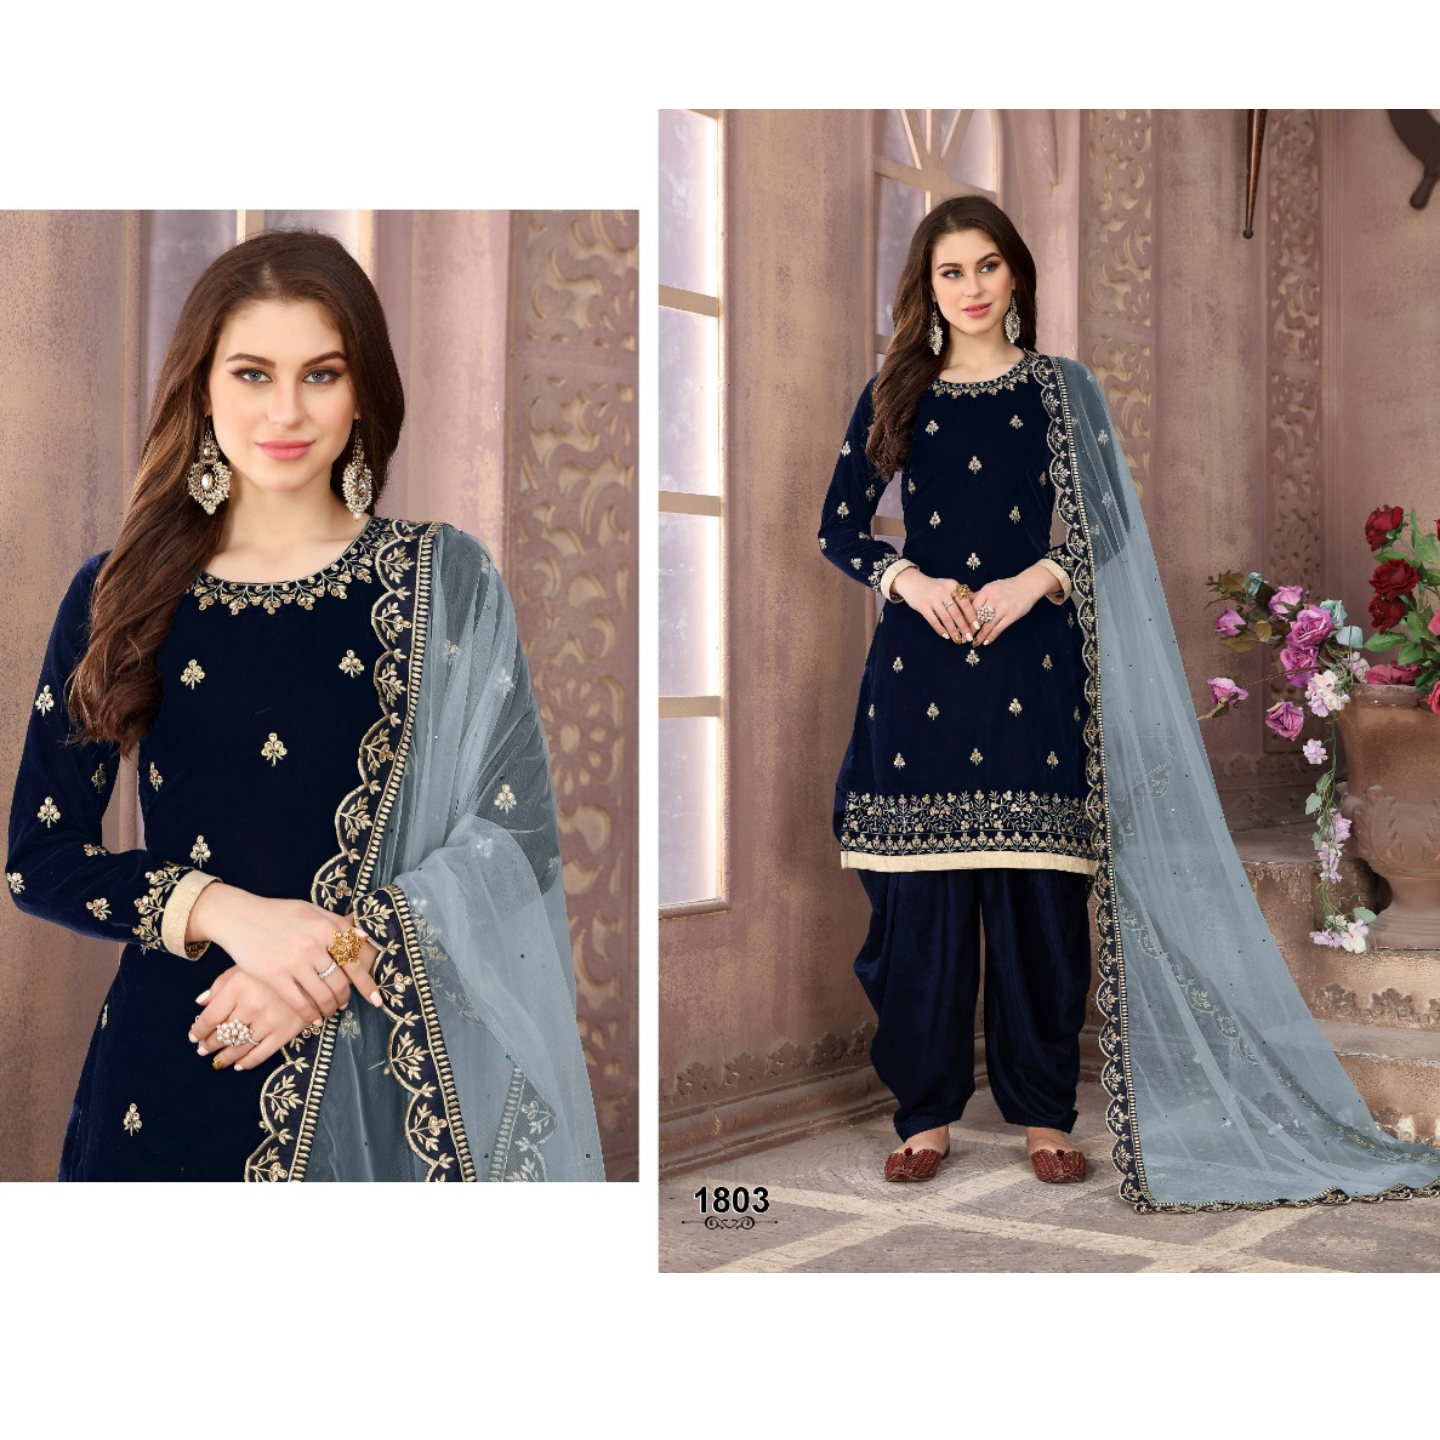 Suits for women Twisha 1800 Series